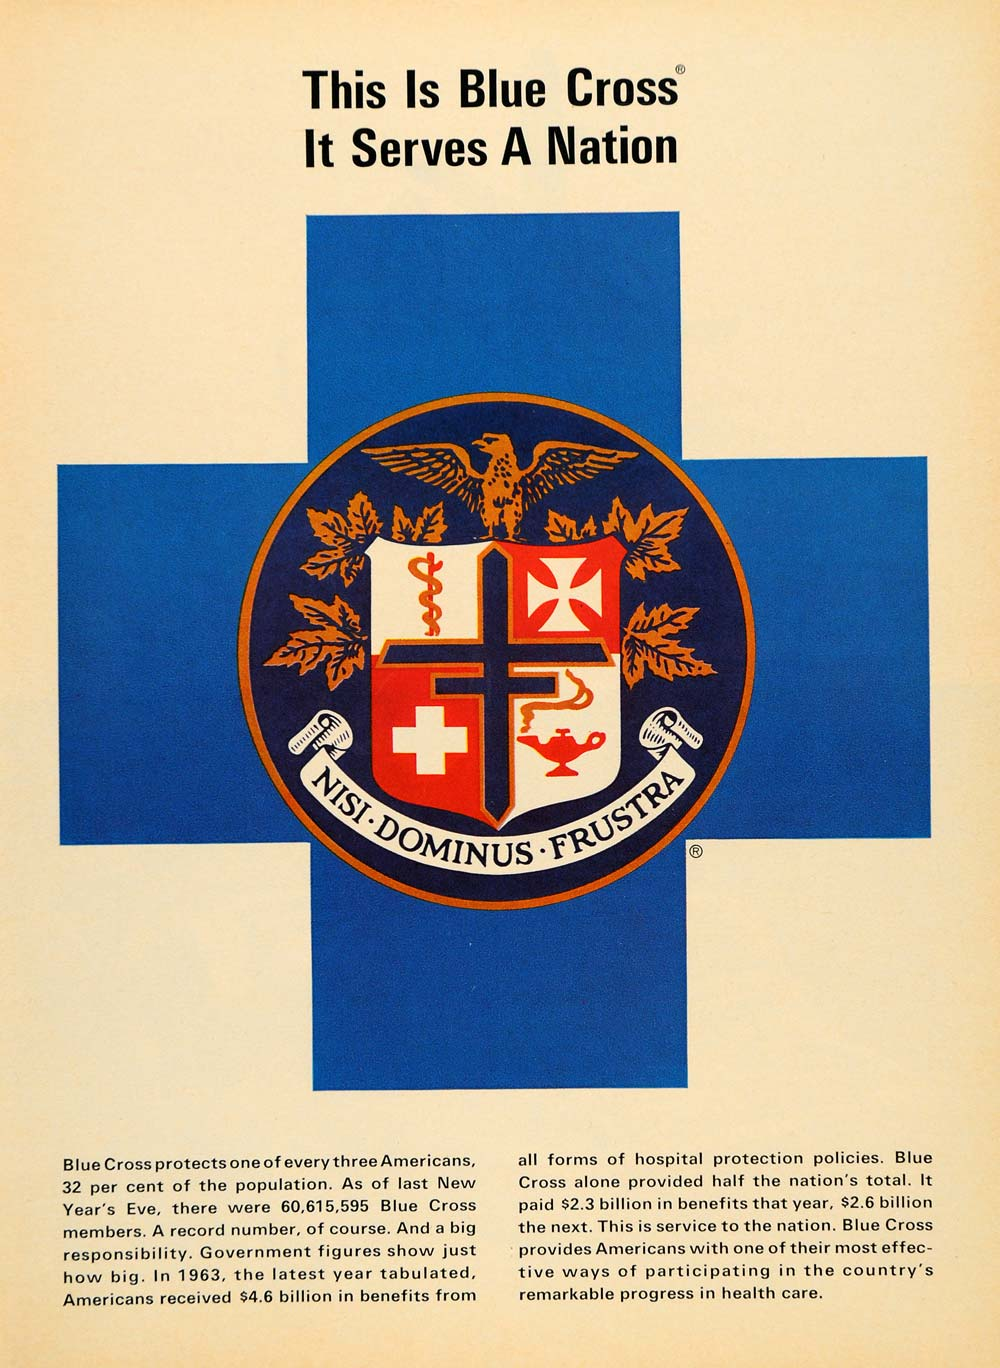 1965 Ad Blue Cross Symbol American Health Care Programs - ORIGINAL TM6